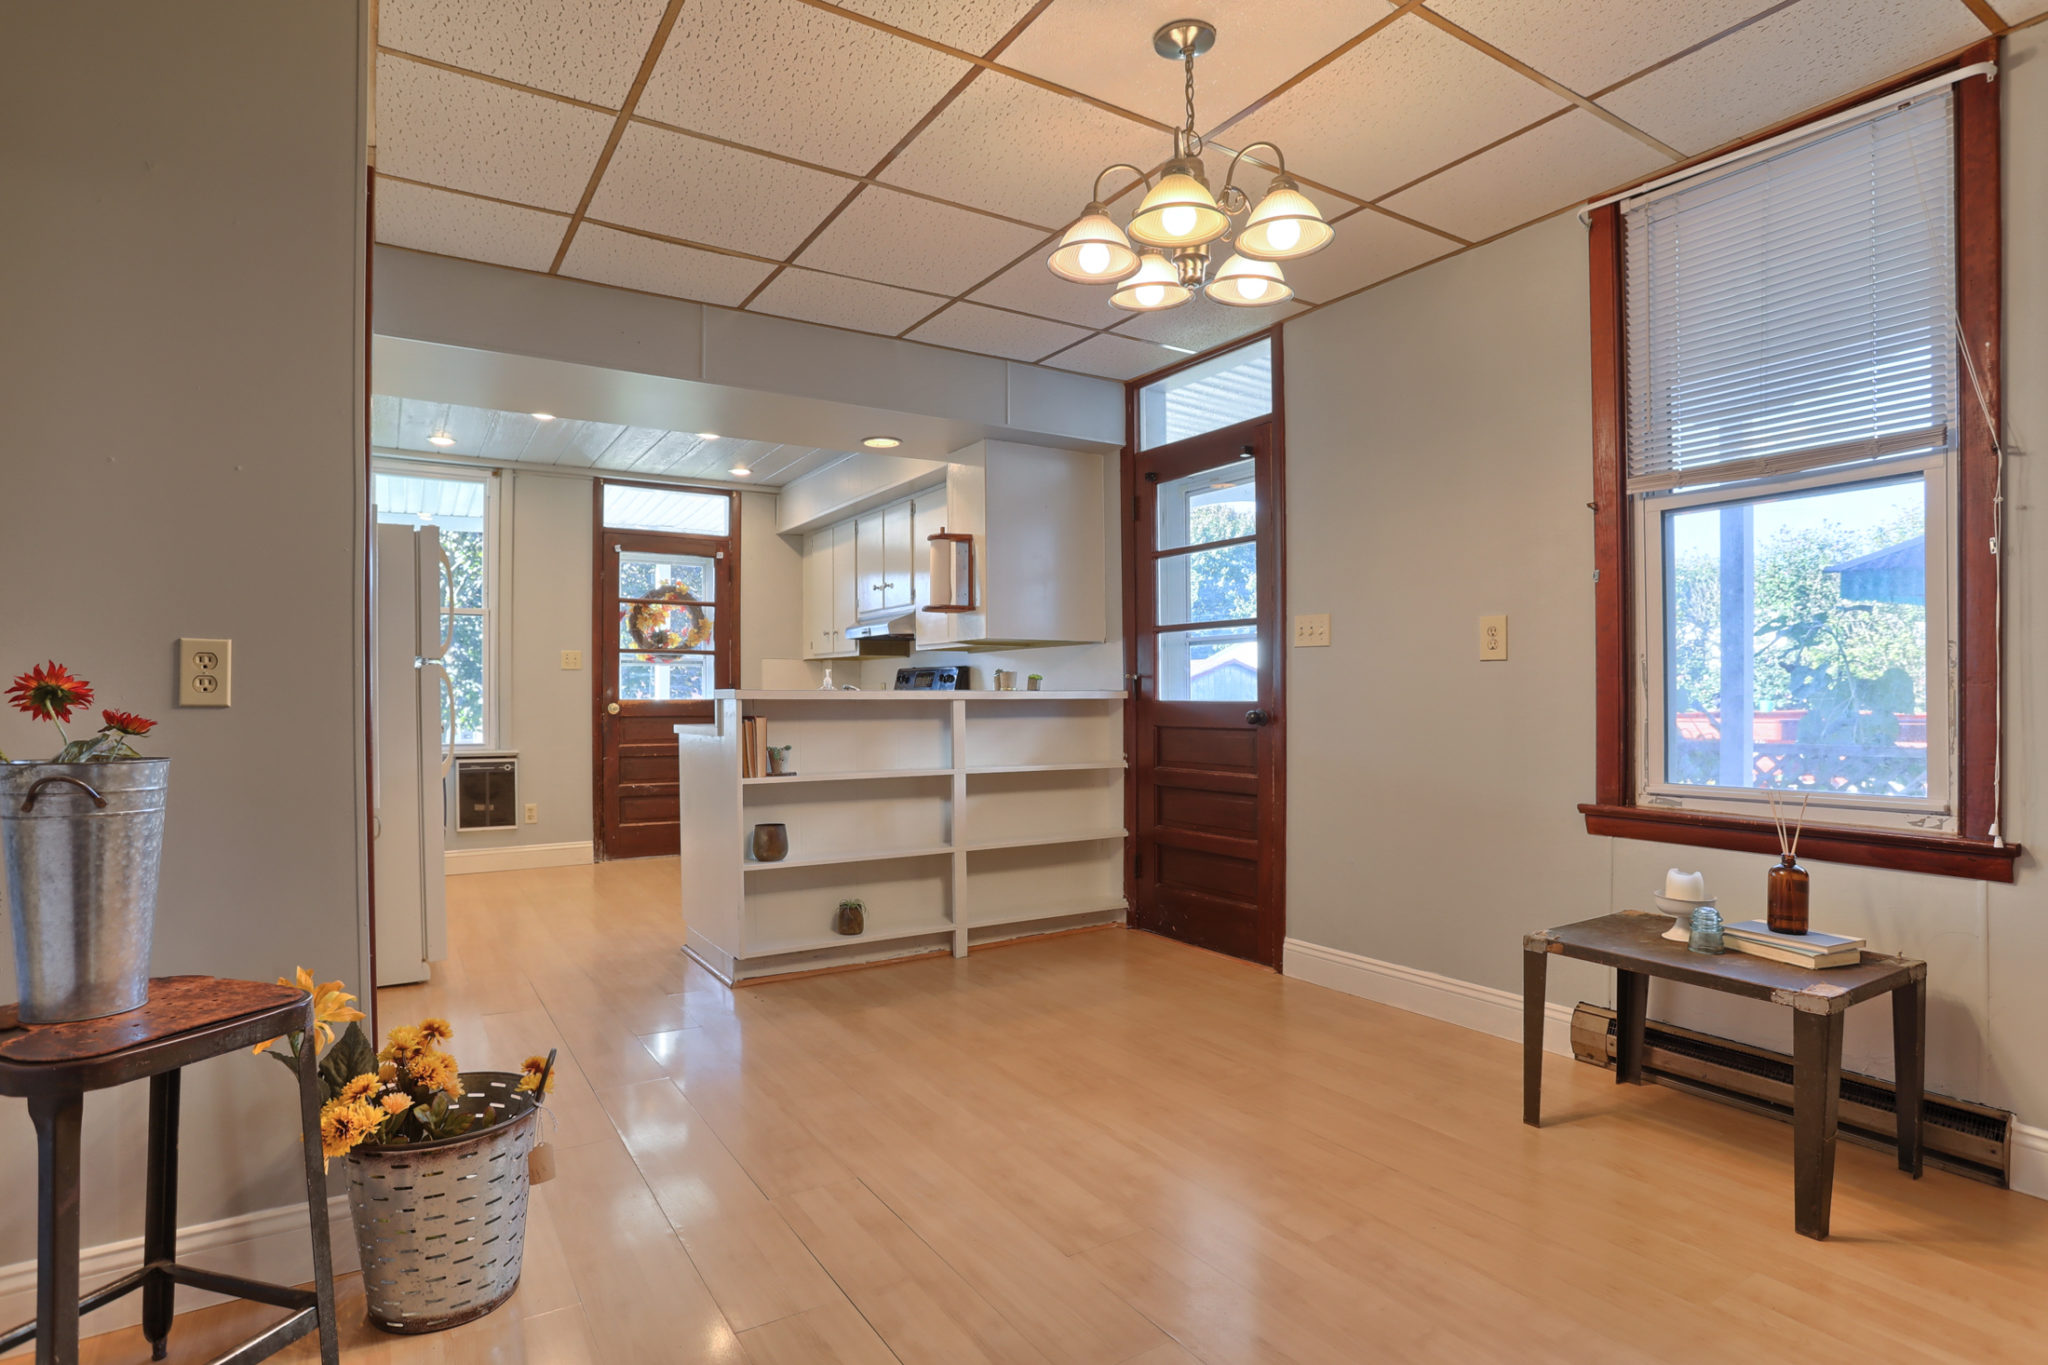 12 E. Maple Avenue - Kitchen/Dining Area of this Myerstown Home